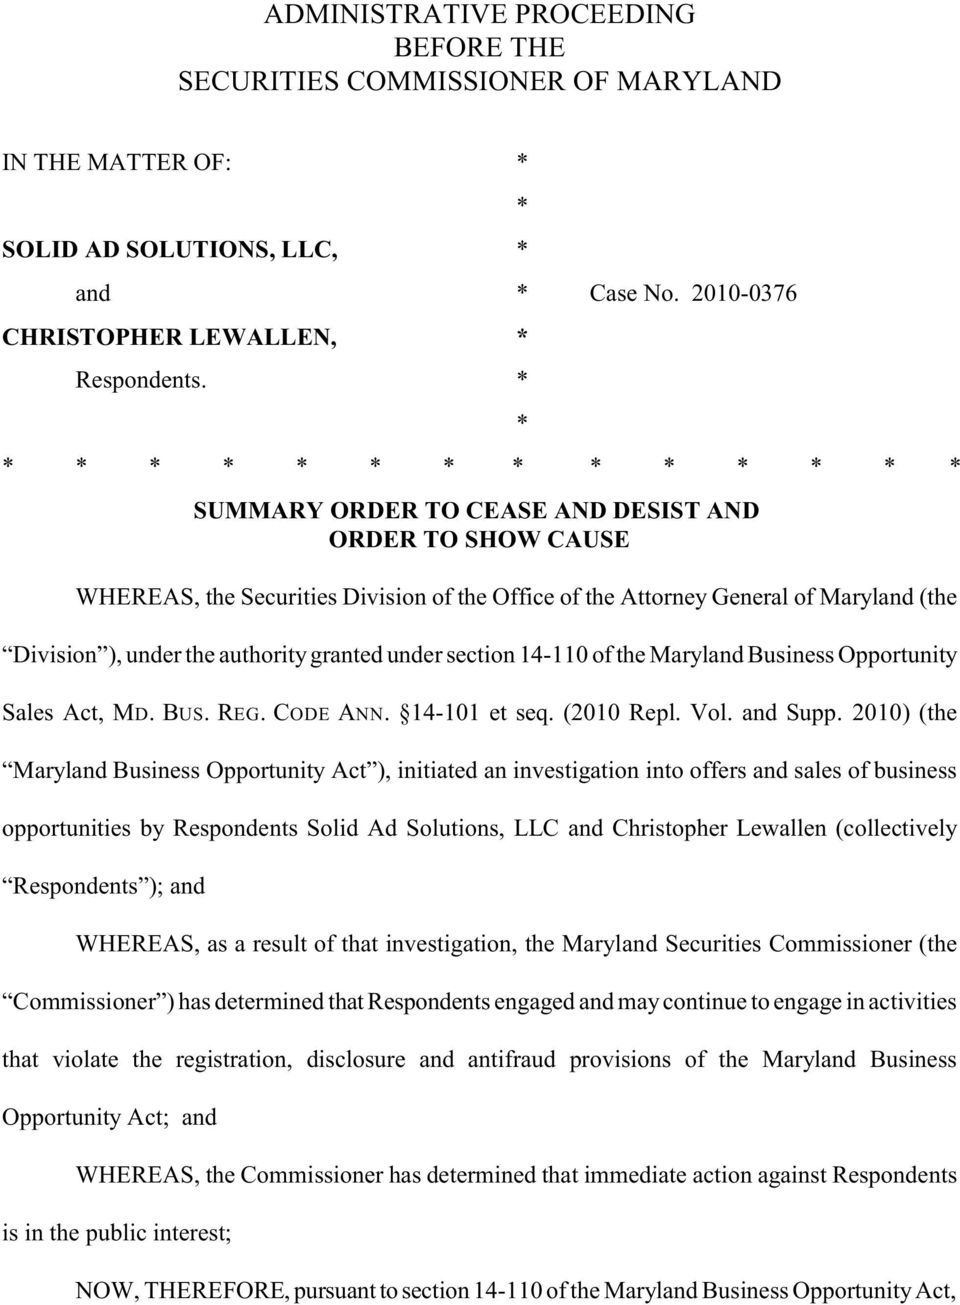 the authority granted under section 14-110 of the Maryland Business Opportunity Sales Act, MD. BUS. REG. CODE ANN. 14-101 et seq. (2010 Repl. Vol. and Supp.